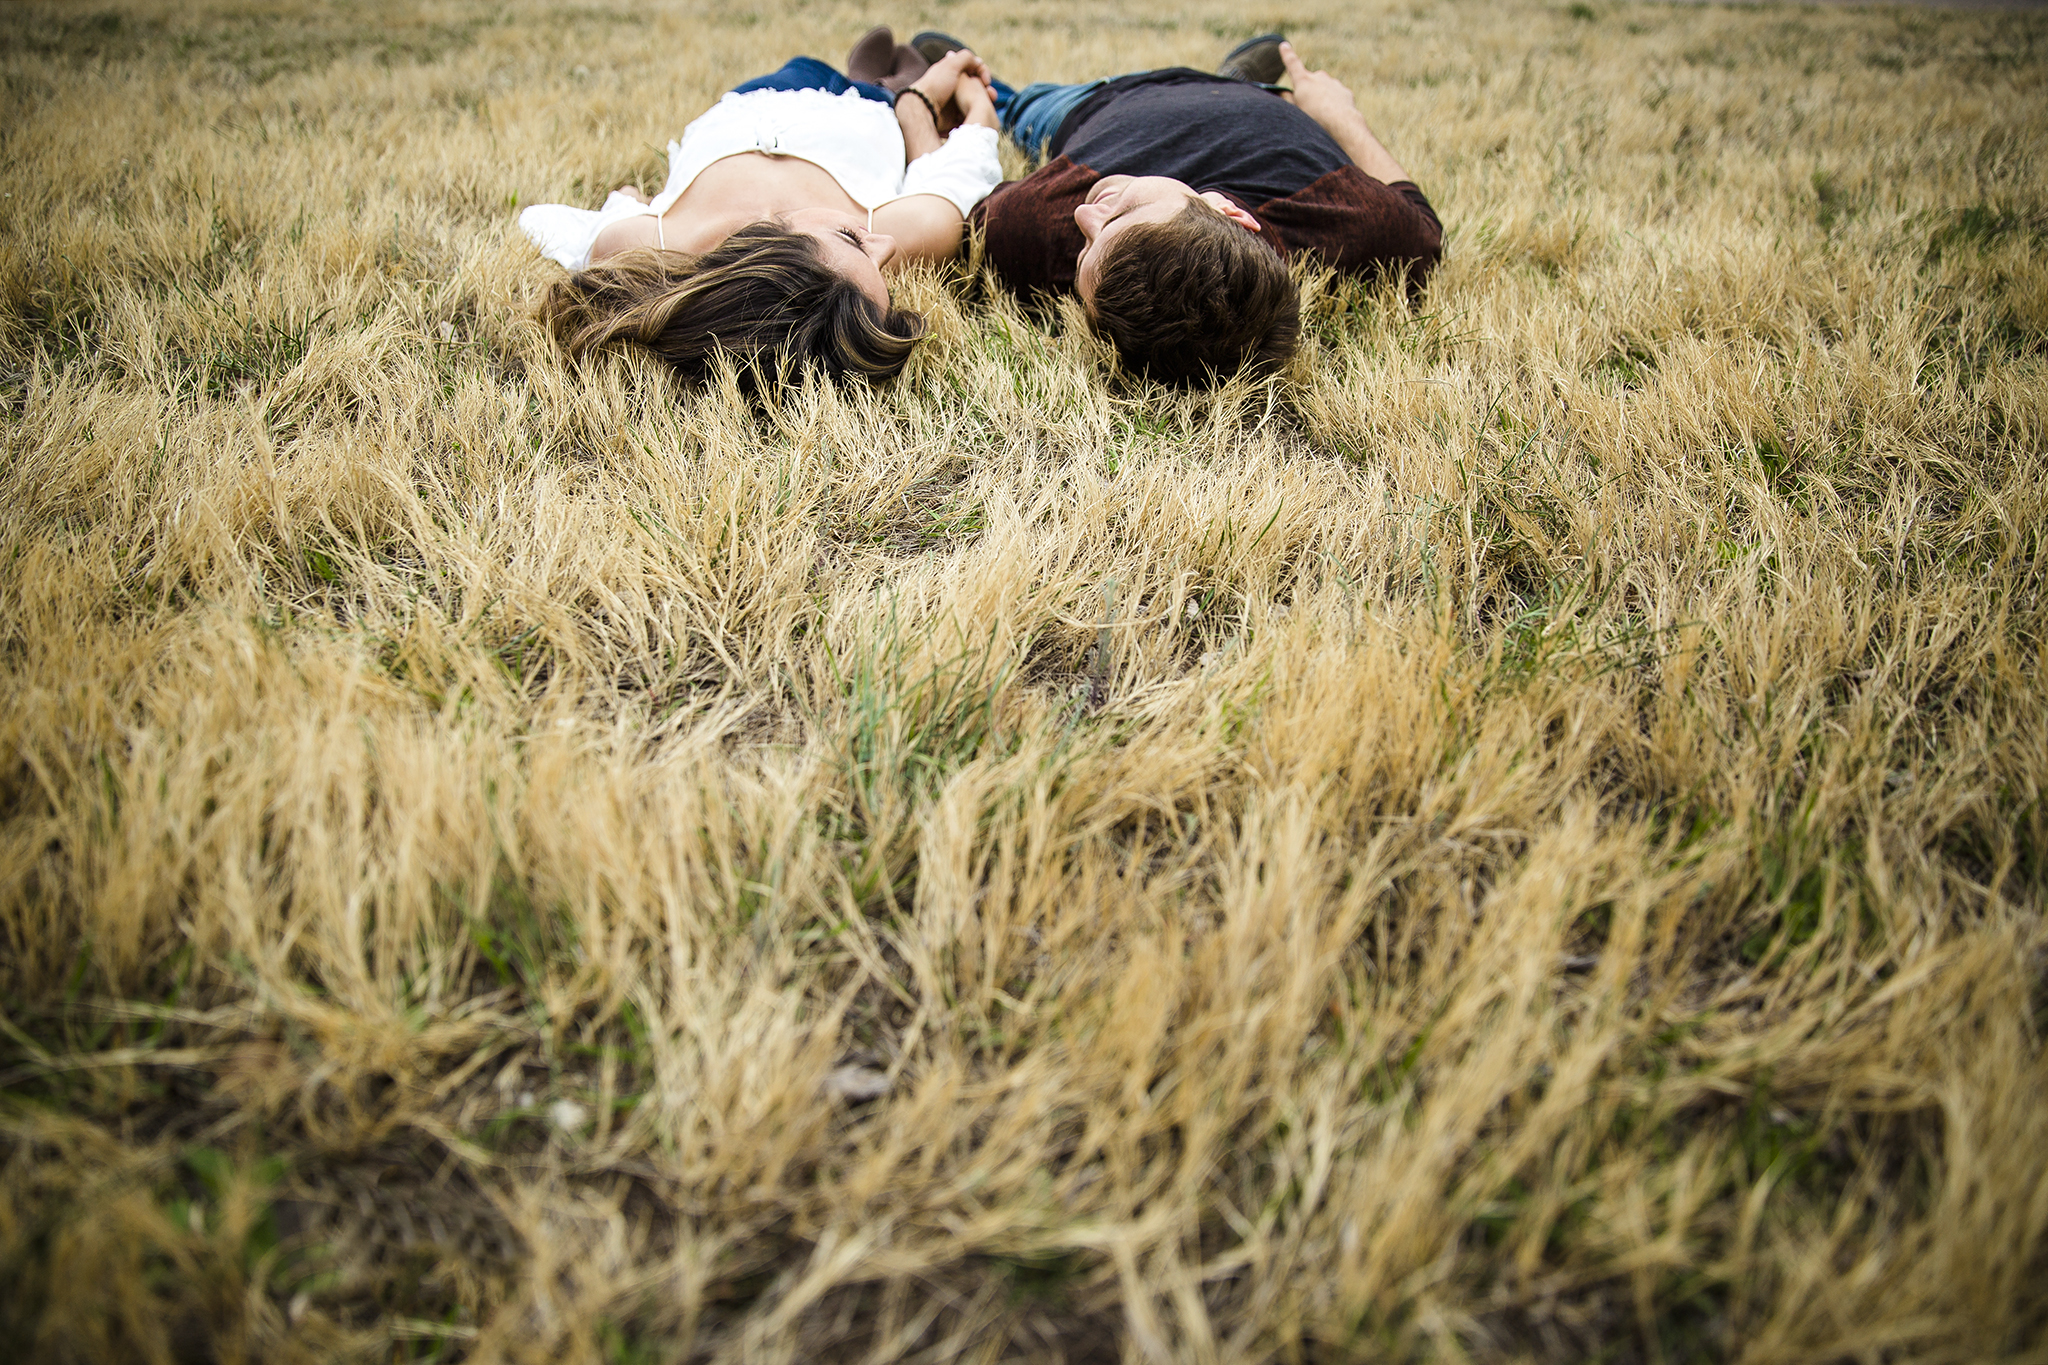 laying in the grass, romantic, holding hands, creative engagement photography